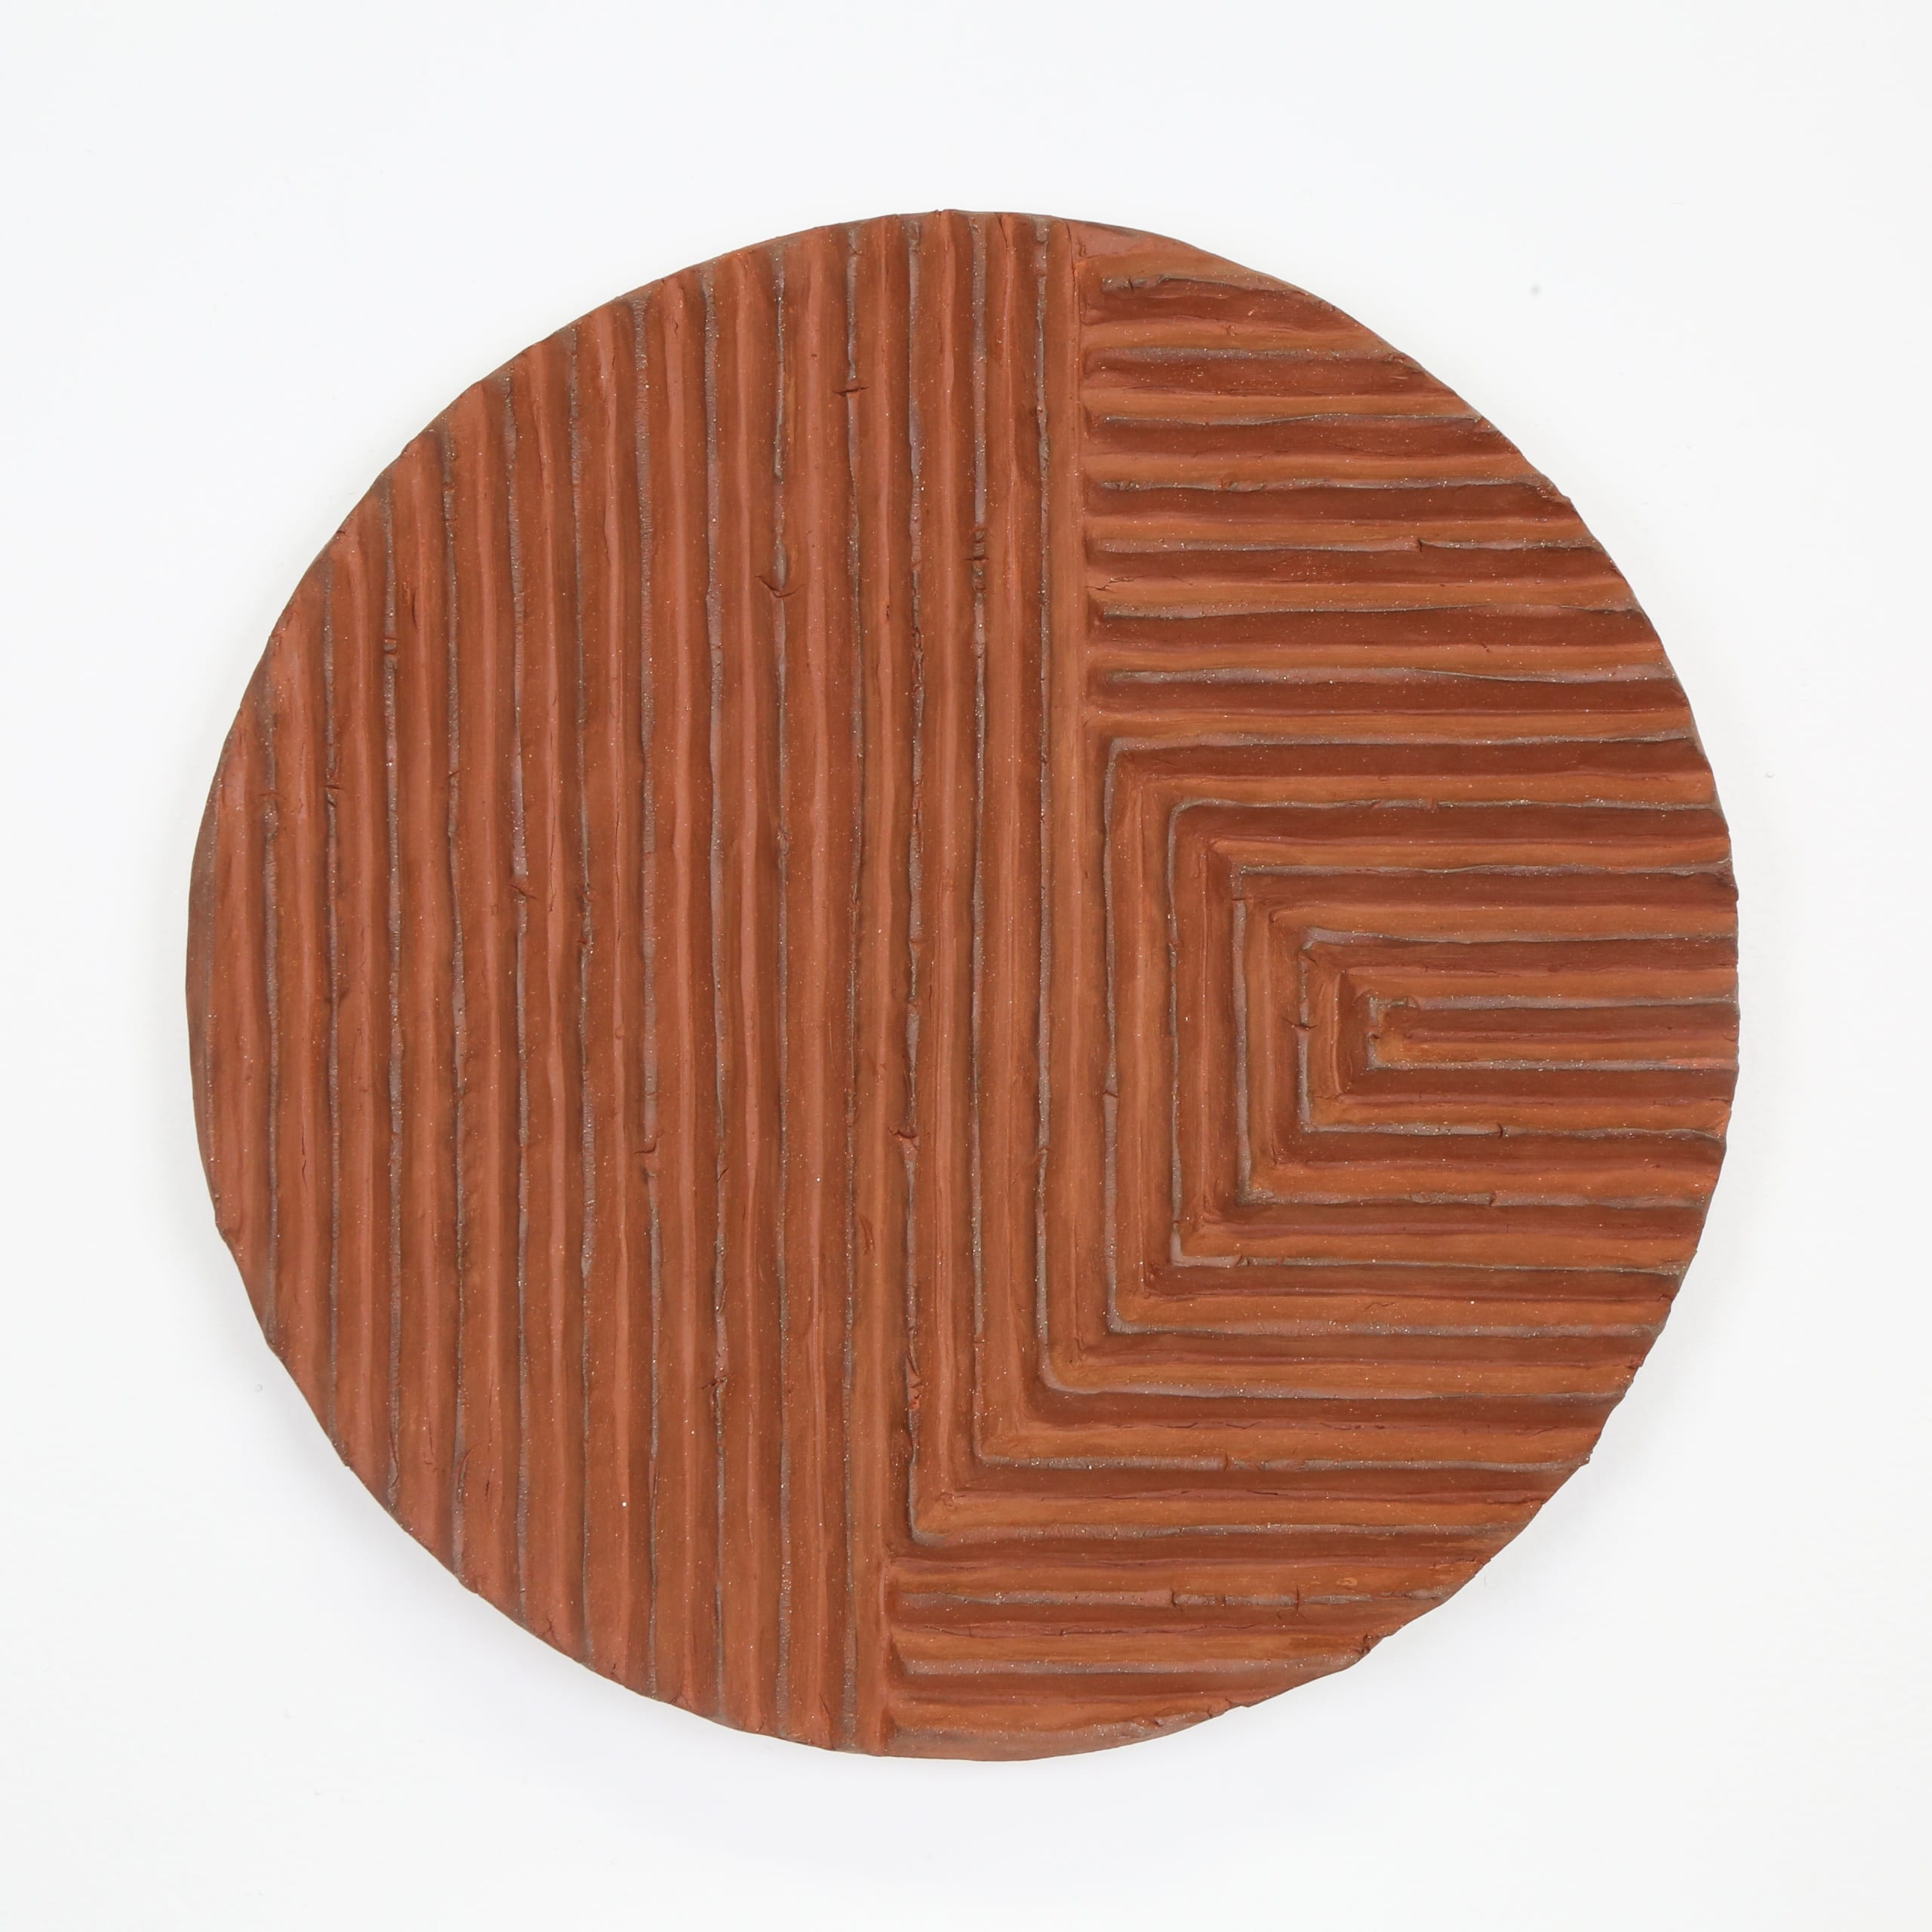 Color photograph of a terra-cotta disk with a series of raised, parallel lines sculpted onto its front. The lines run up and down vertically on the left, and toward the object's right the lines are horizontal. The object appears to be unglazed.